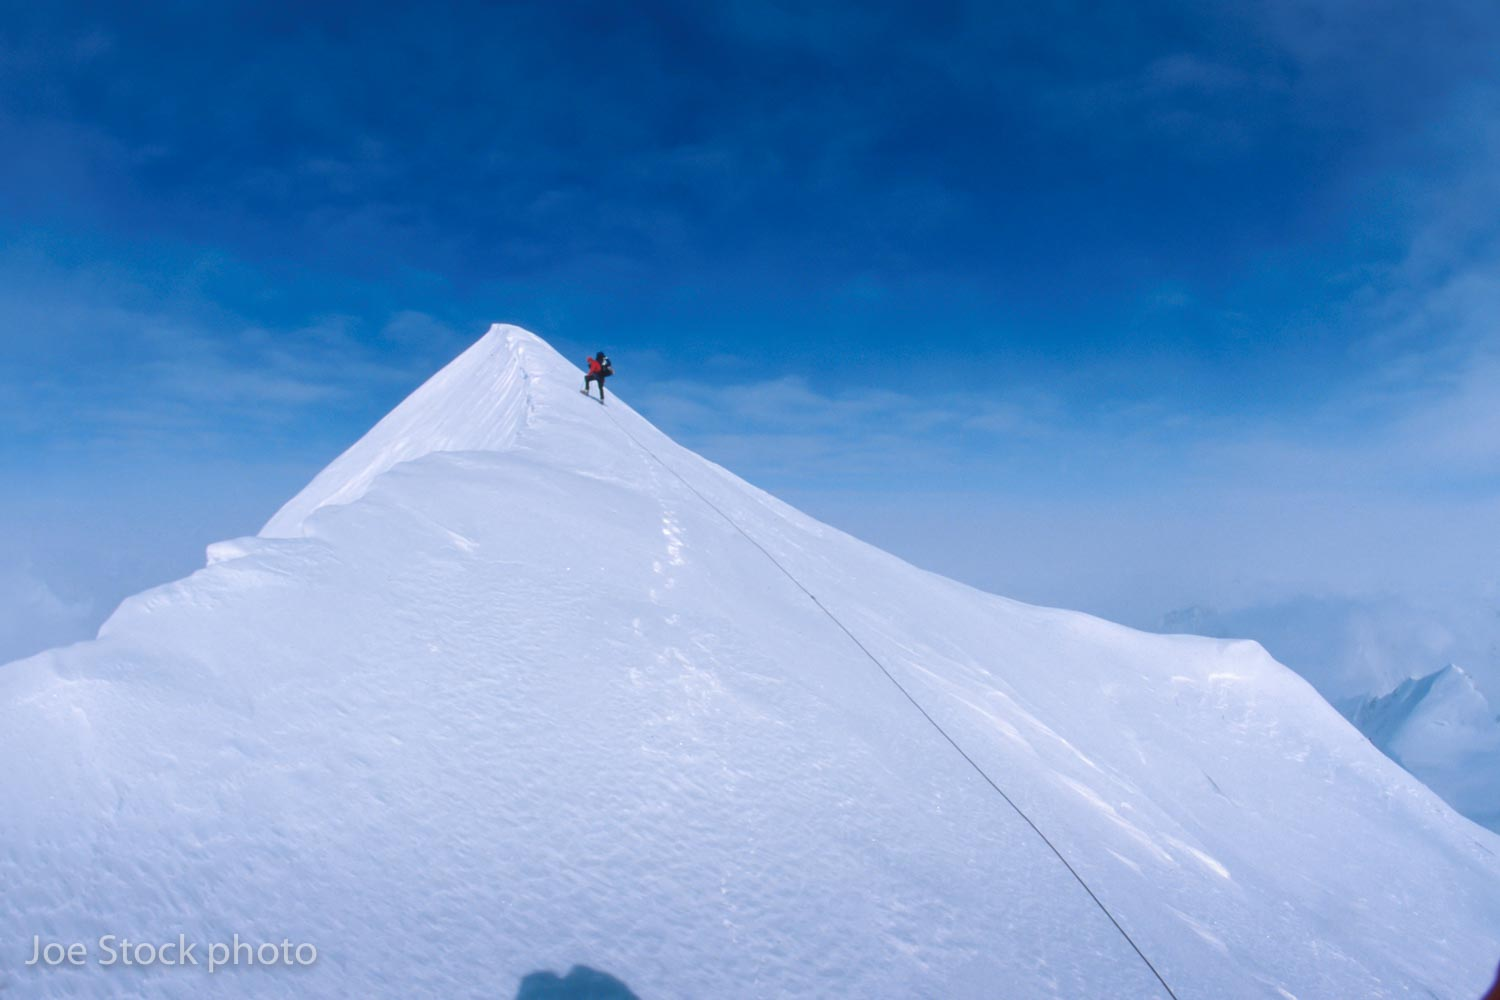 Dylan on the summit of Mount Thor (12,251'), the second highest summit in the Chugach Mountains.